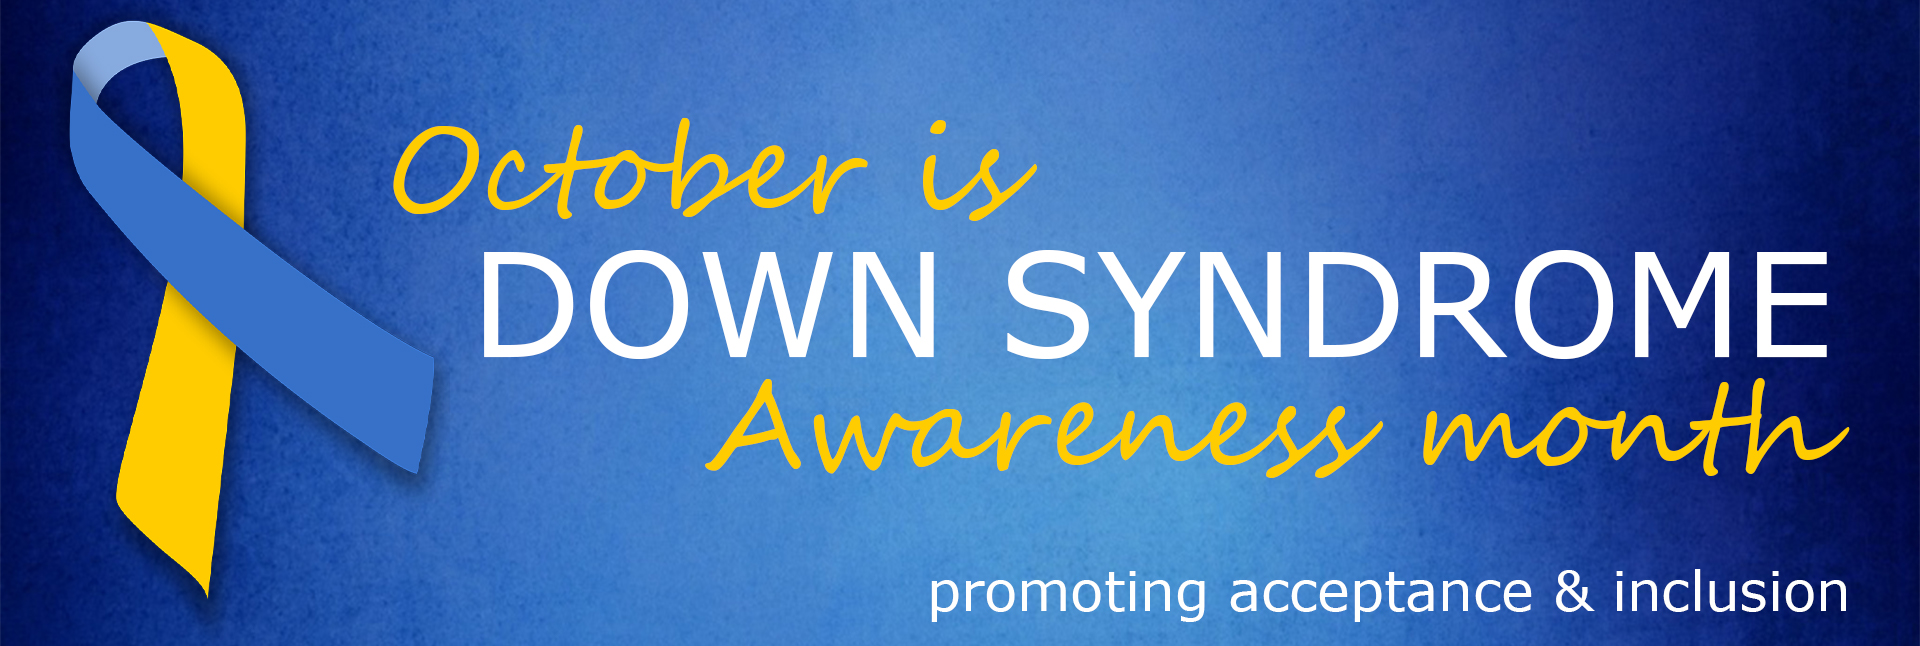 Down Sydrome Awareness Month